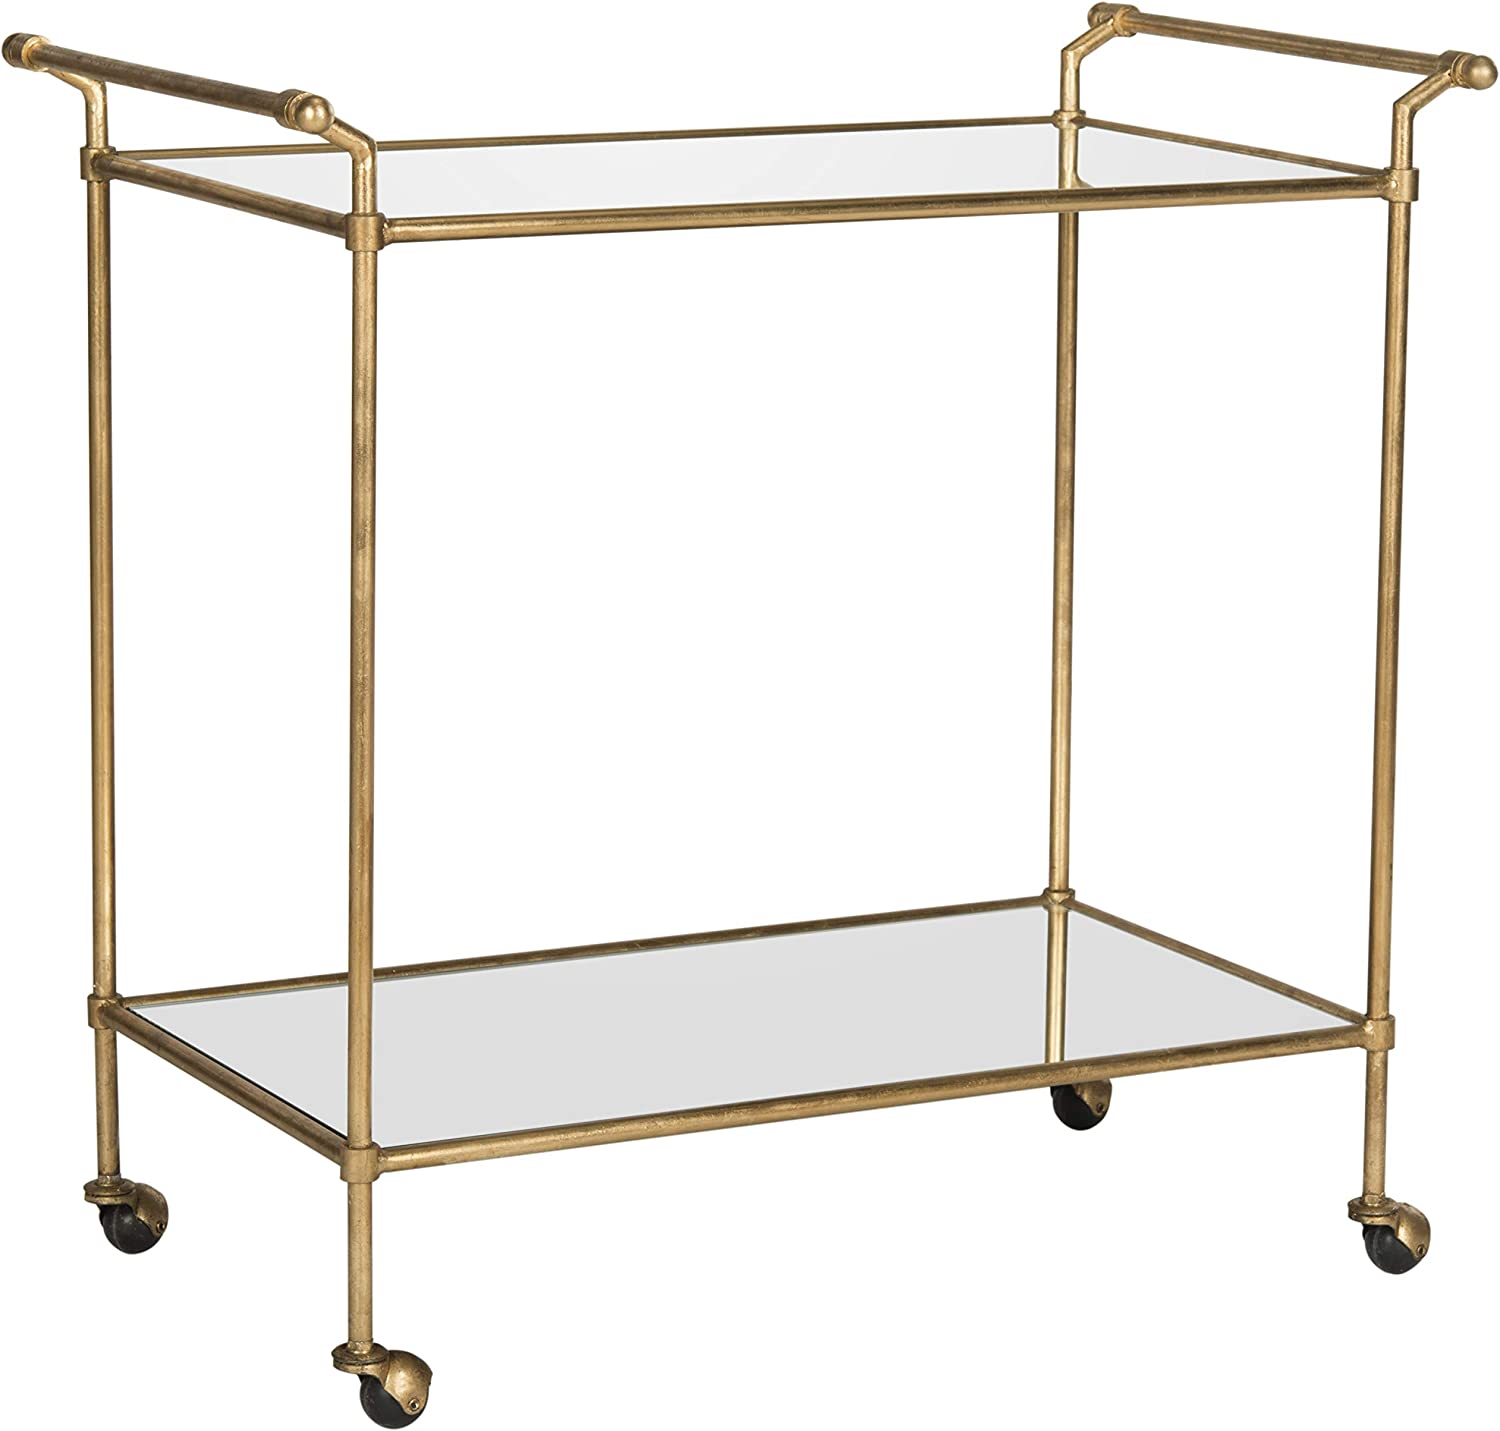 Safavieh Home Collection Felicity Gold Bar Cart